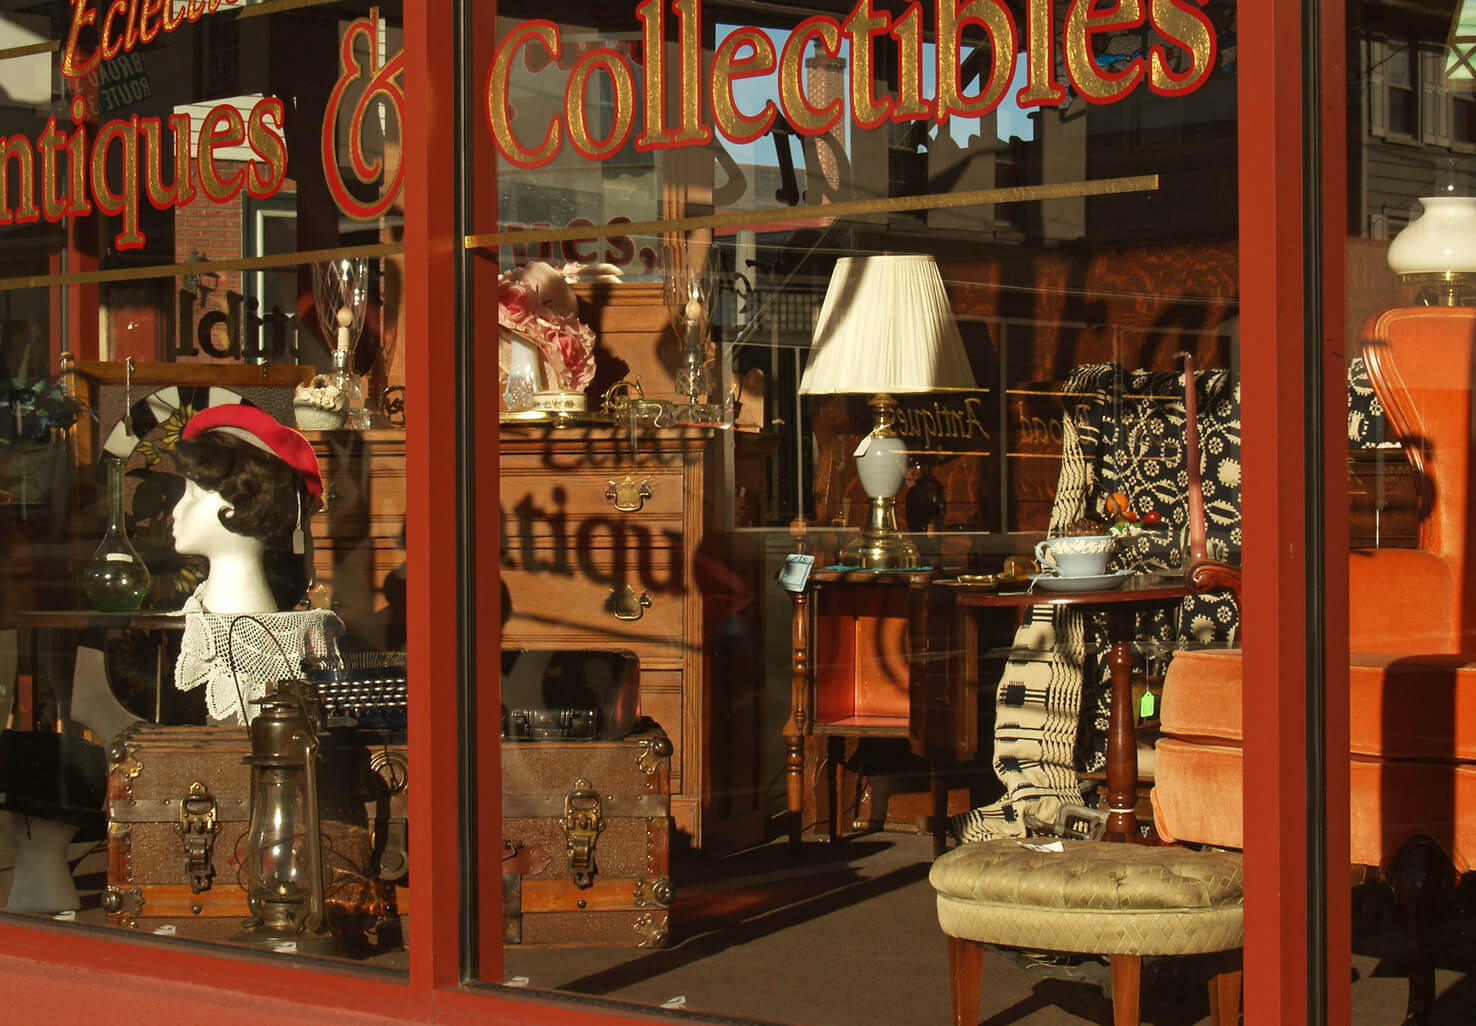 Antiques in the windows of an antique shop